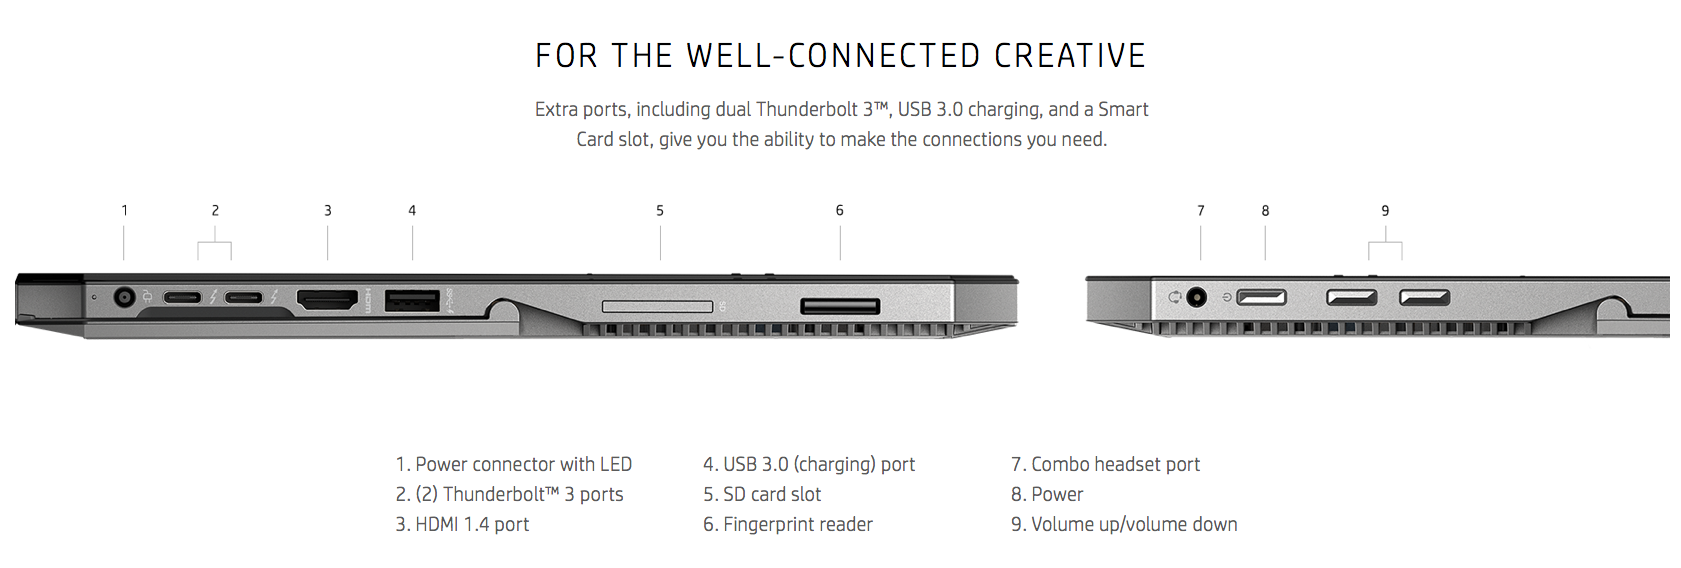 HP ZBook x2: a tablet workstation 3